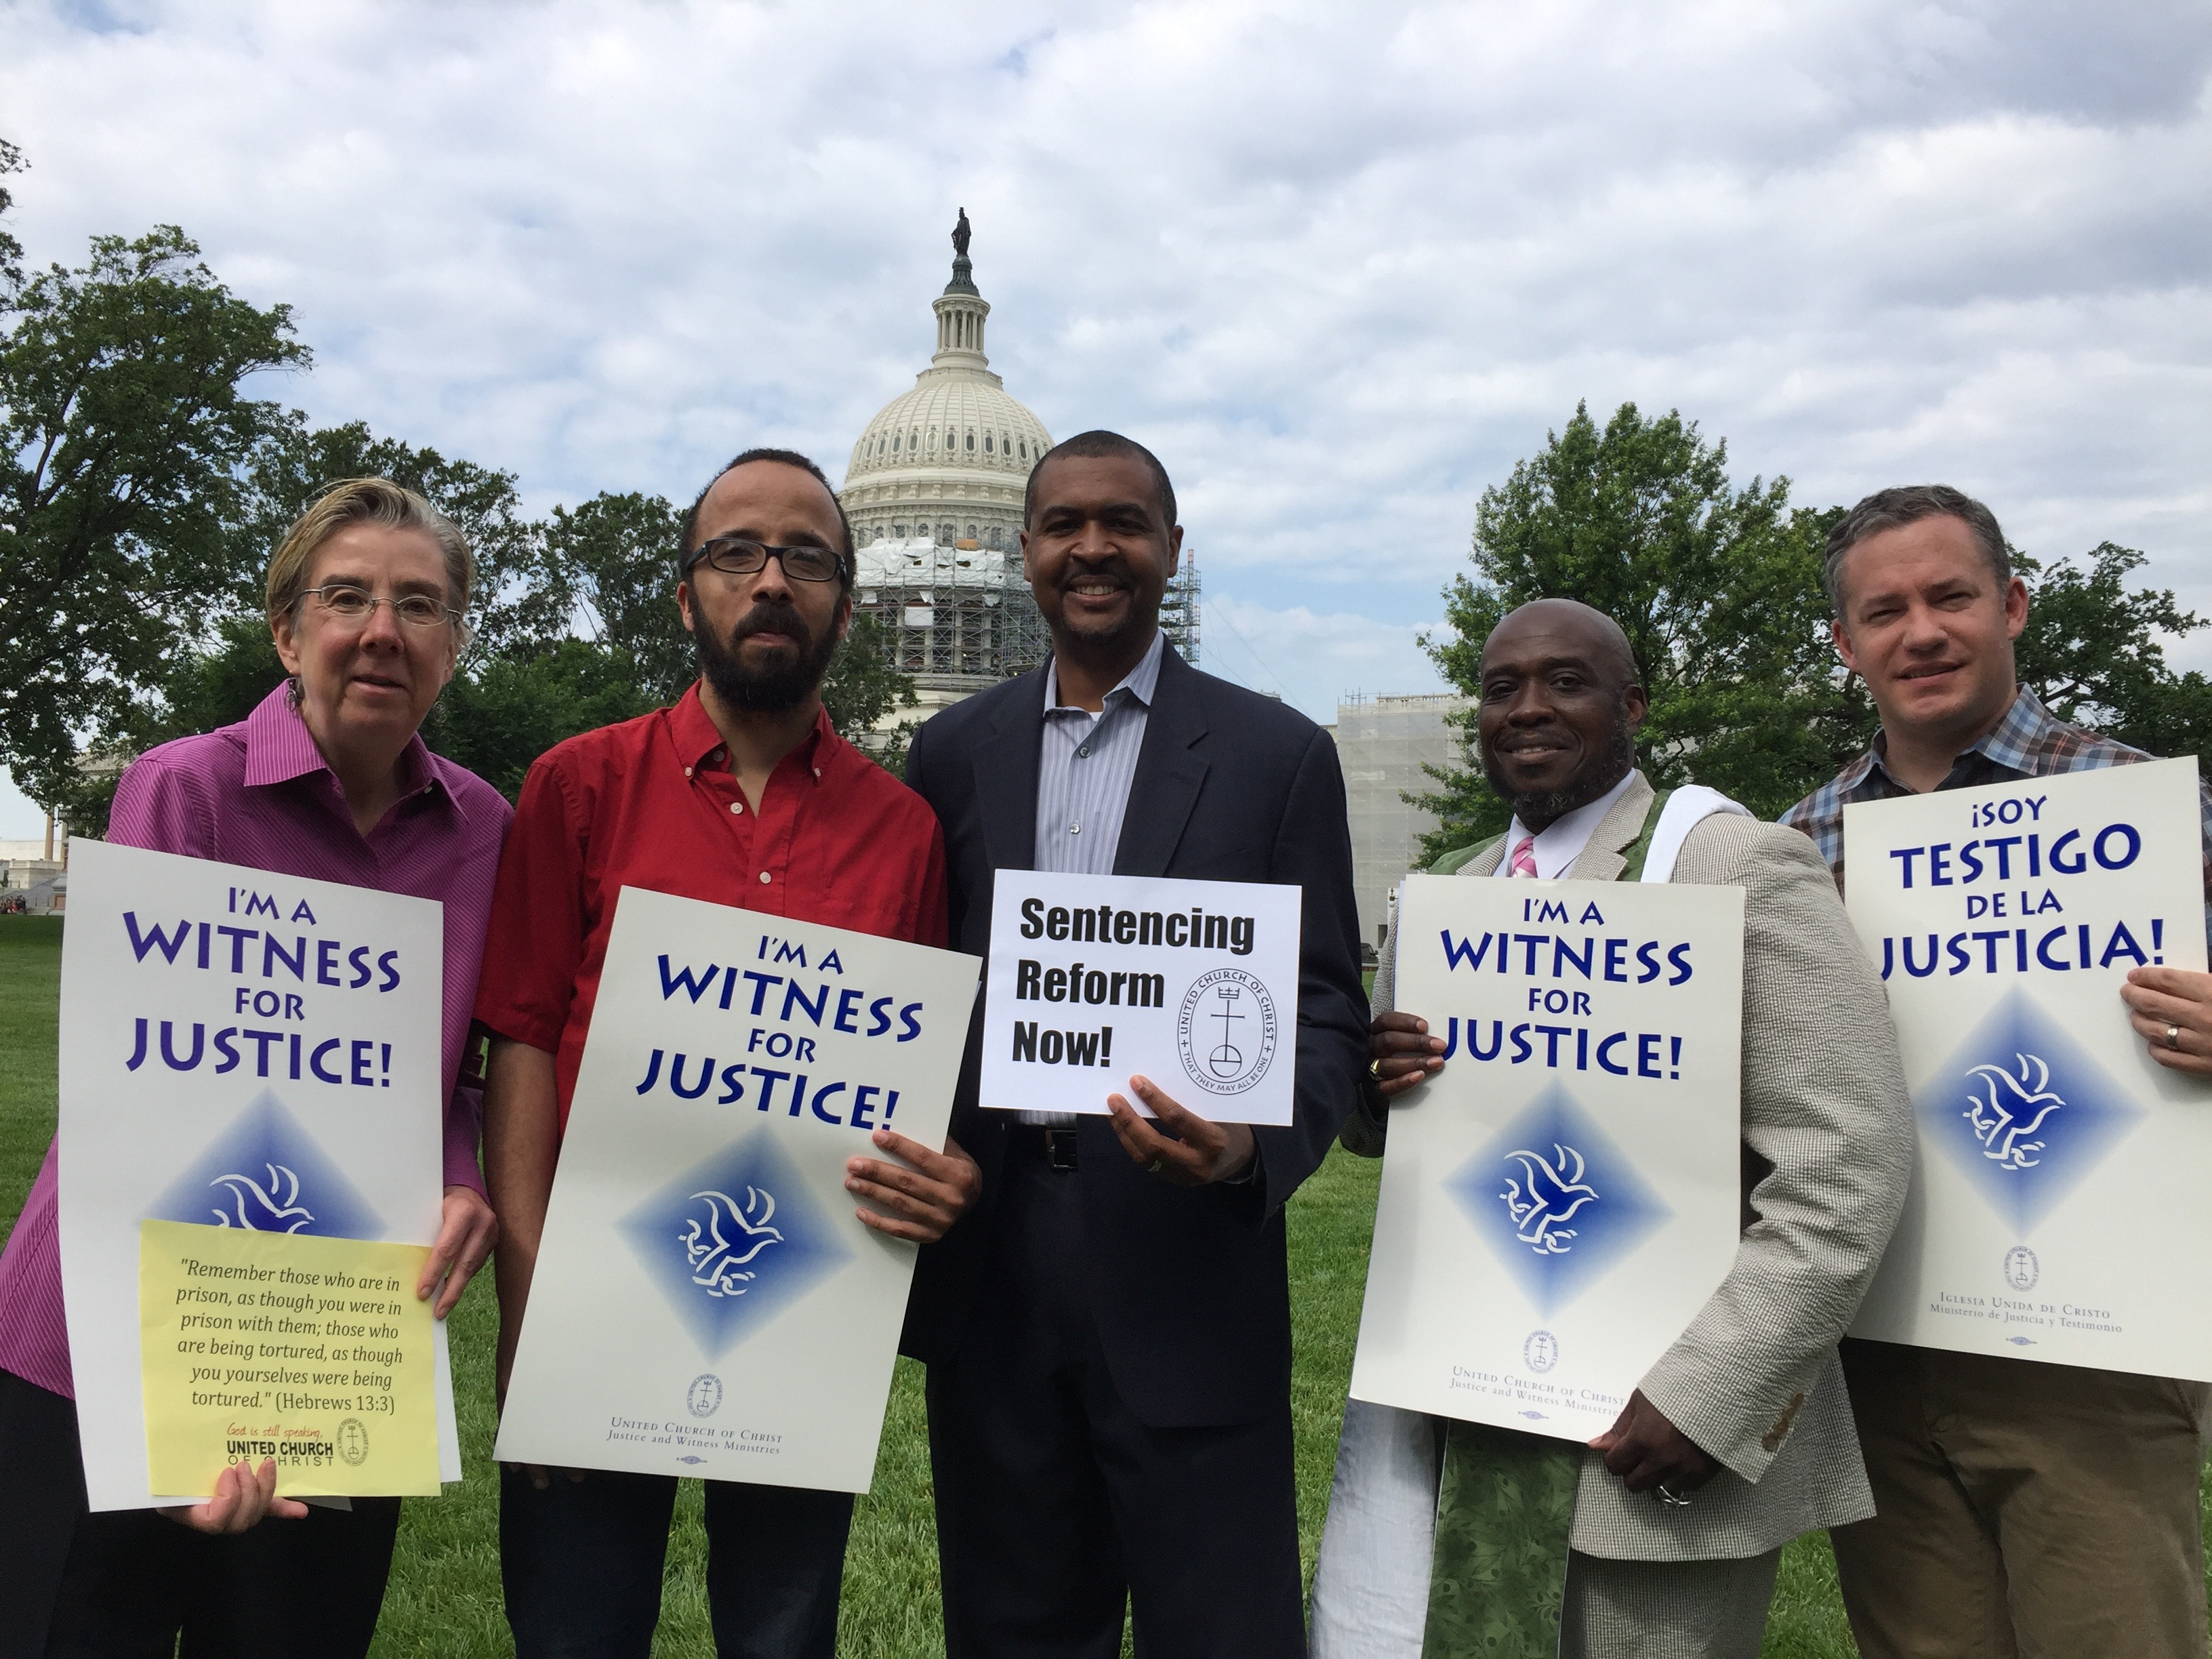 People of faith calling for sentencing reform at the U.S. Capitol